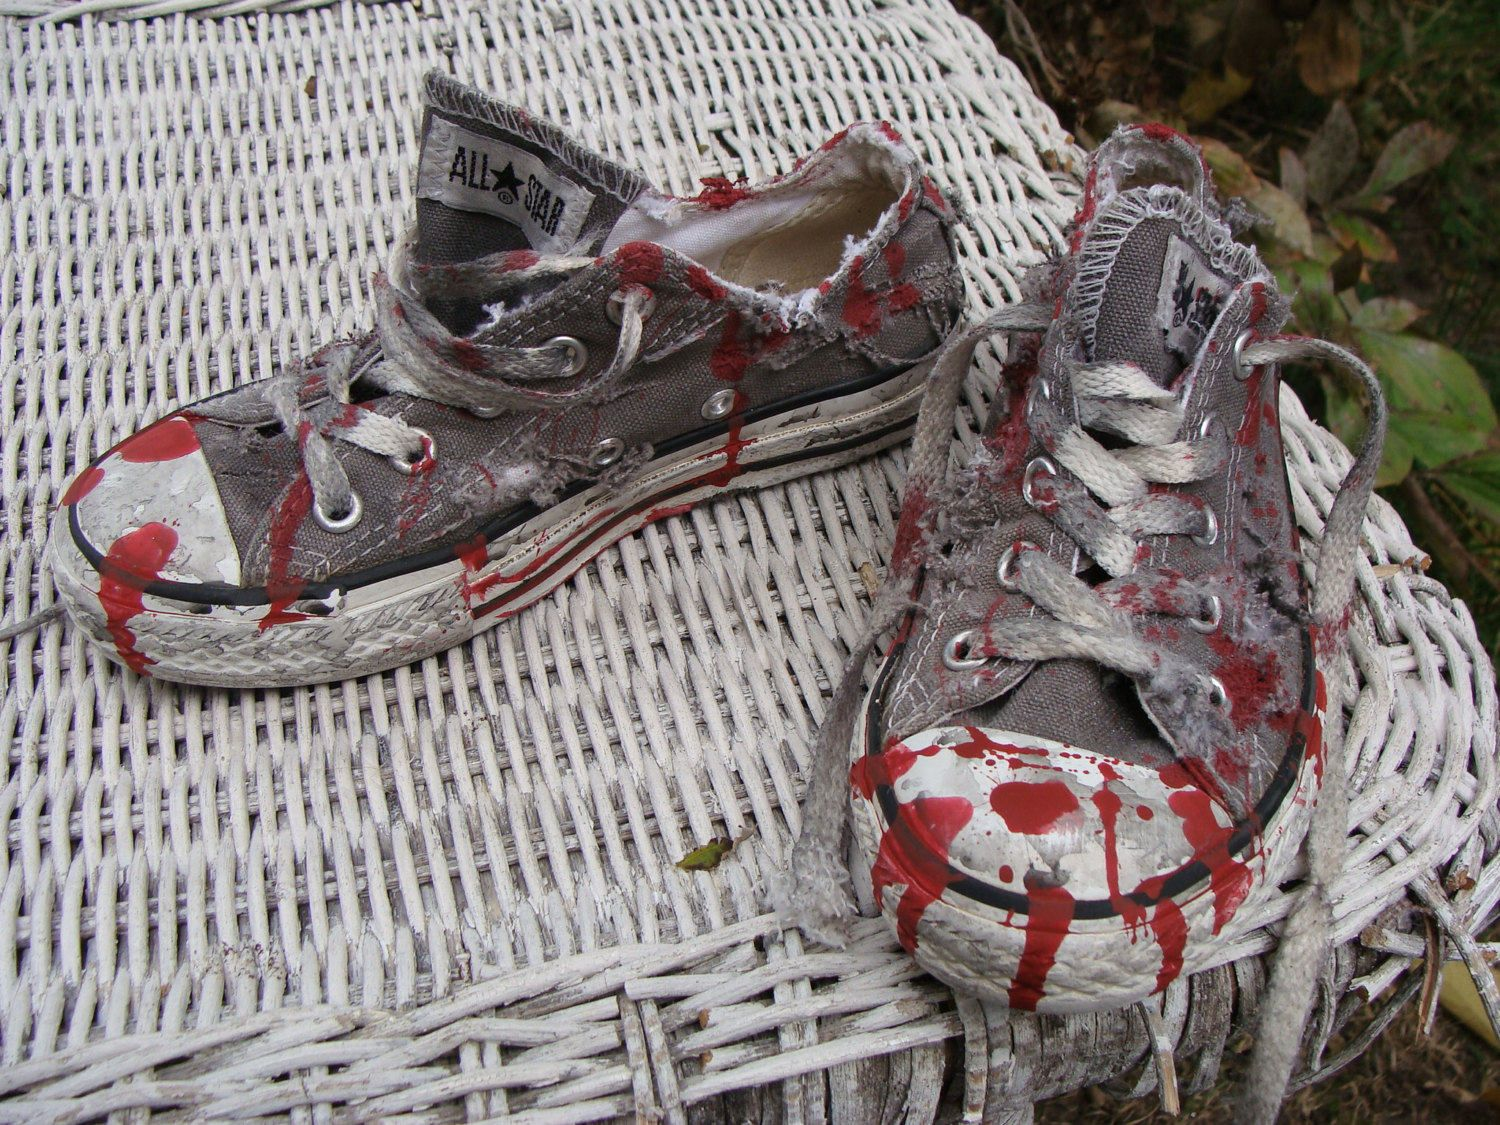 ec89303021f9 Kids Zombie Shoes. Unisex Boys or Girls Realistic BLOODY SHOES. Gray  Converse All Star. Low Top Chucks. Halloween Costume. Youth Size 12 by  wardrobetheglobe ...